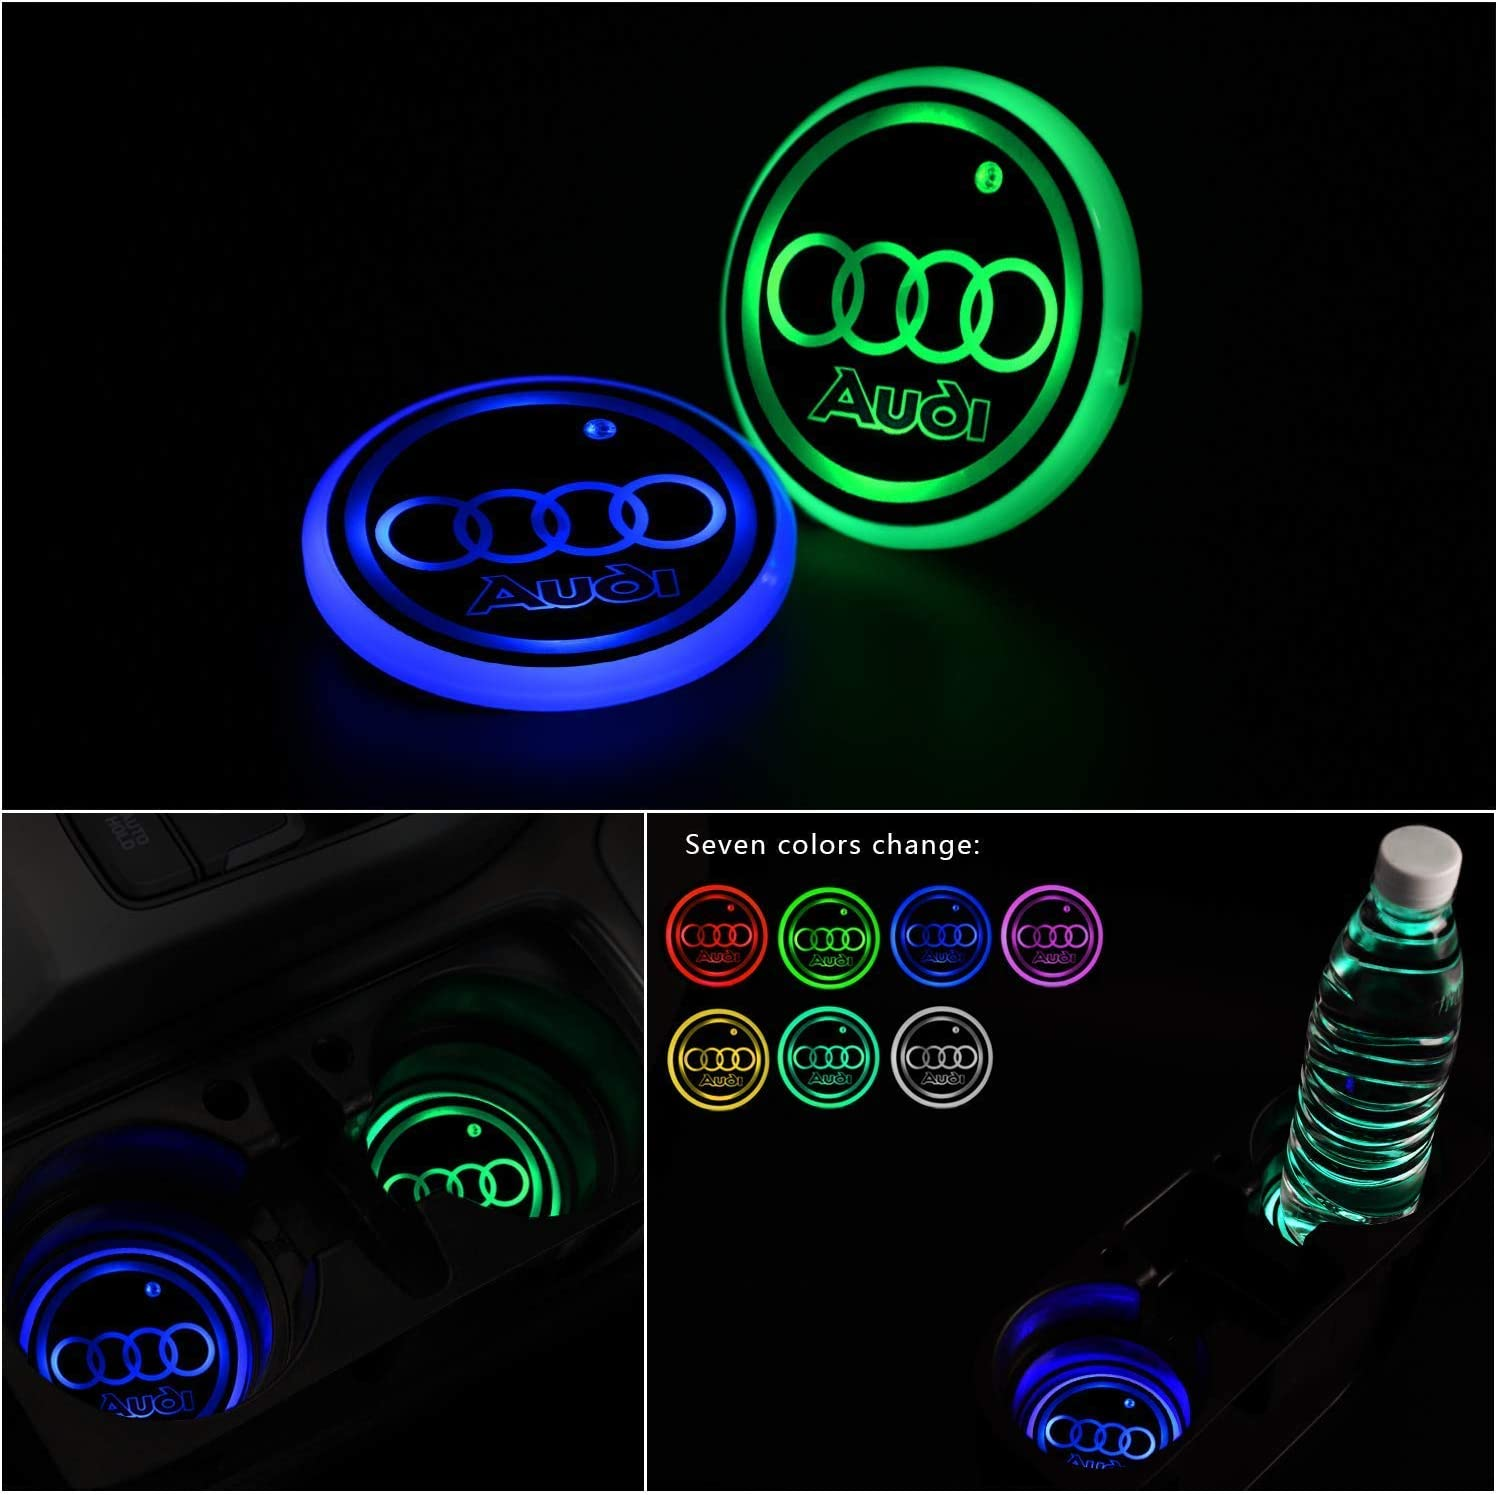 Upgraded Version LED Car Cup Holder Lights,LED Shiny Water Cup Mat Waterproof Bottle Drinks Coaster Built-in Light 7Colors Changing USB Charging Mat Cup Mat 2PCS Gabriel fit A-udi